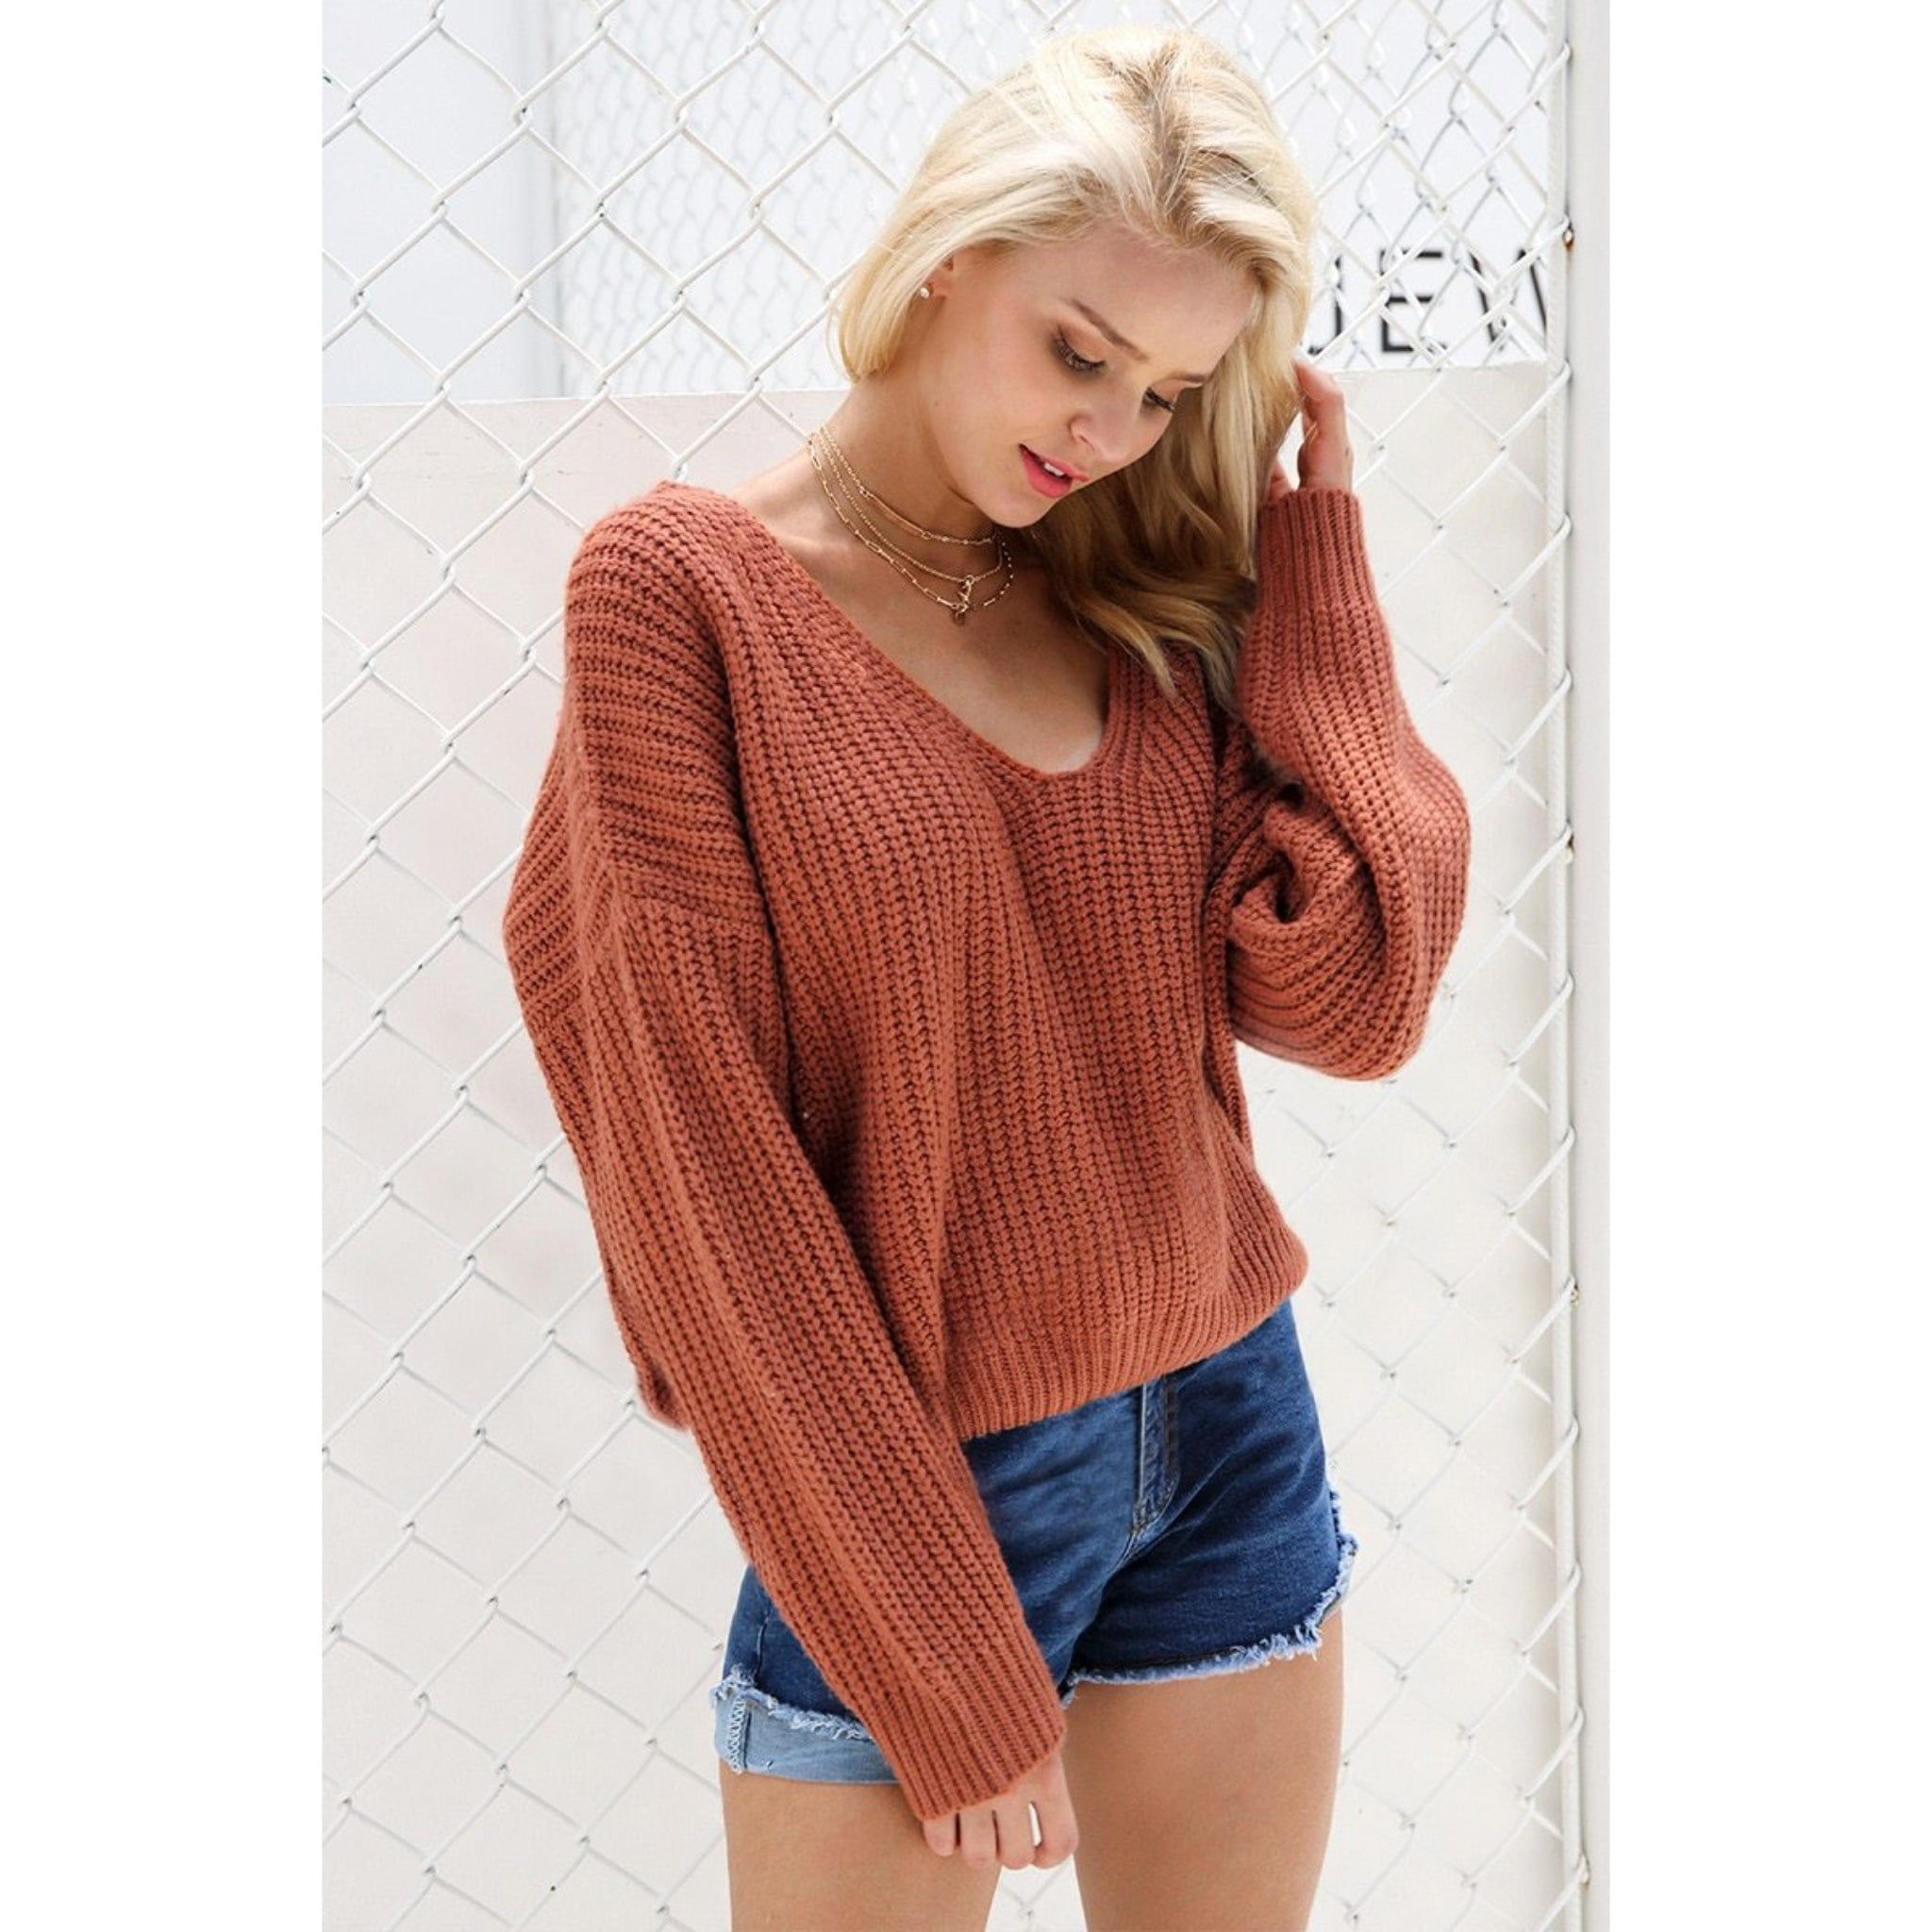 Women's Fall Sweater Outfit with an Open Back Sweatshirt that Laces up the back Knitted sweater and long sleeves